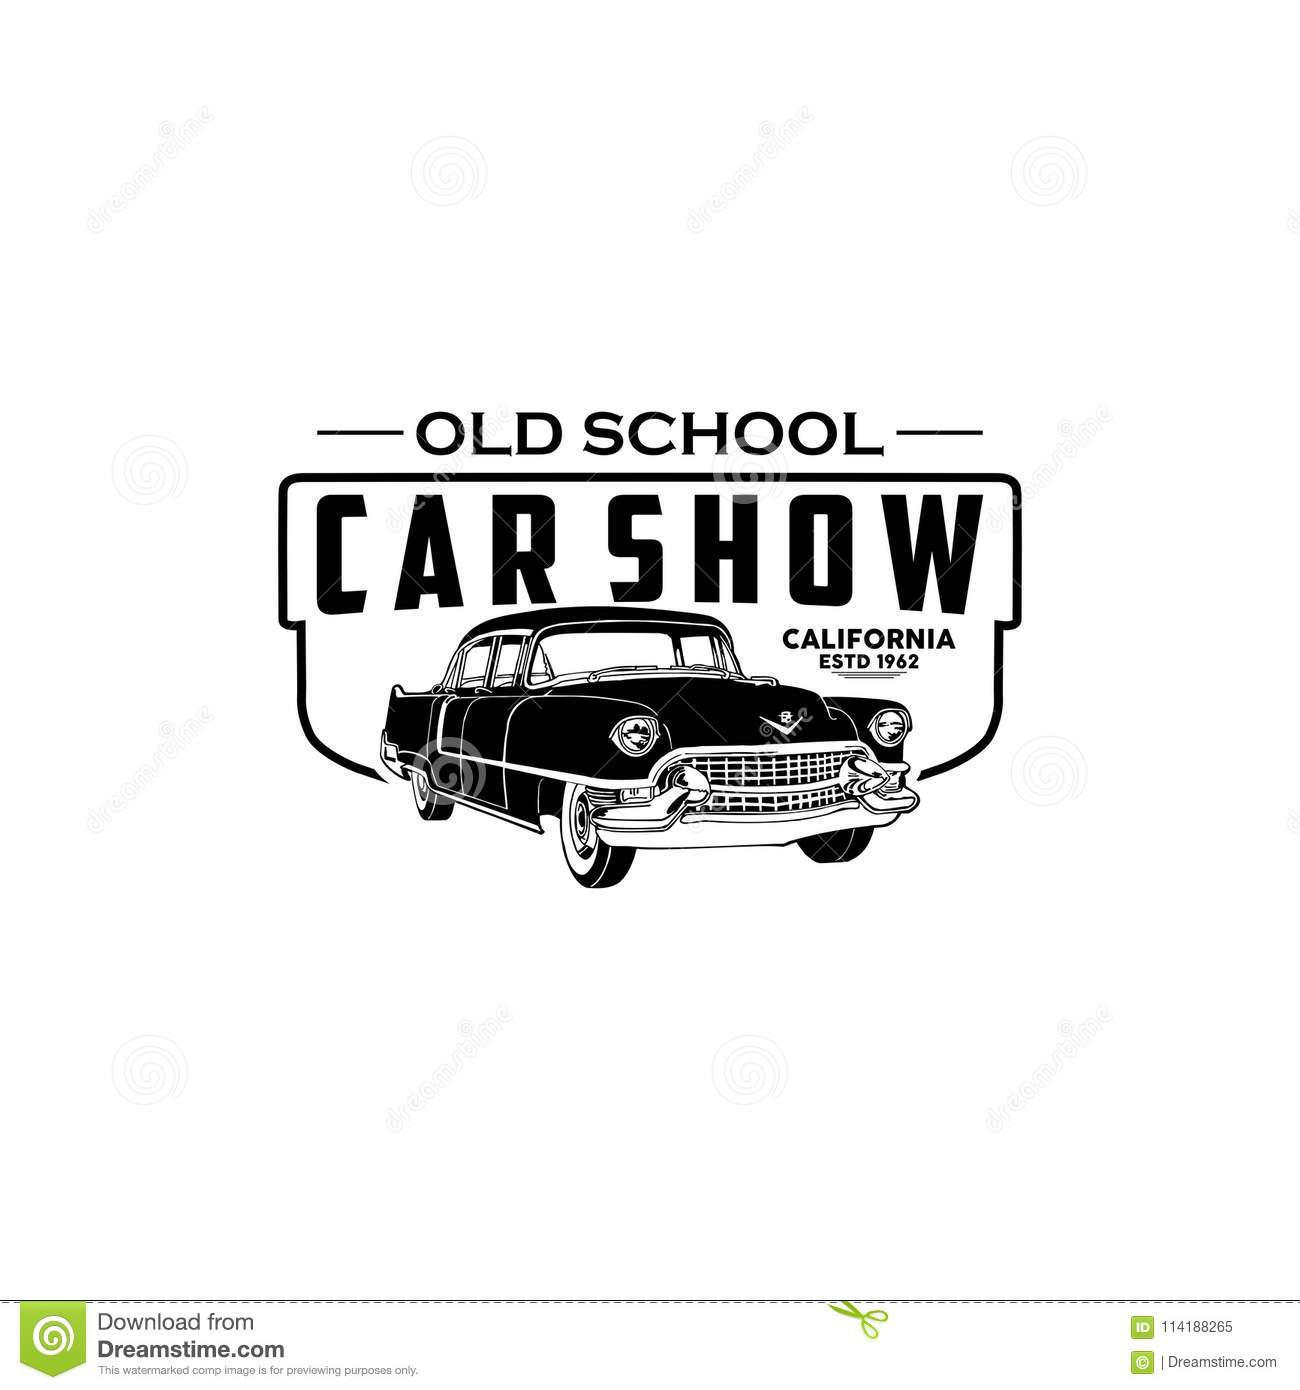 Car Show California Logo Vector Stock Vector Illustration Of - Classic car show california